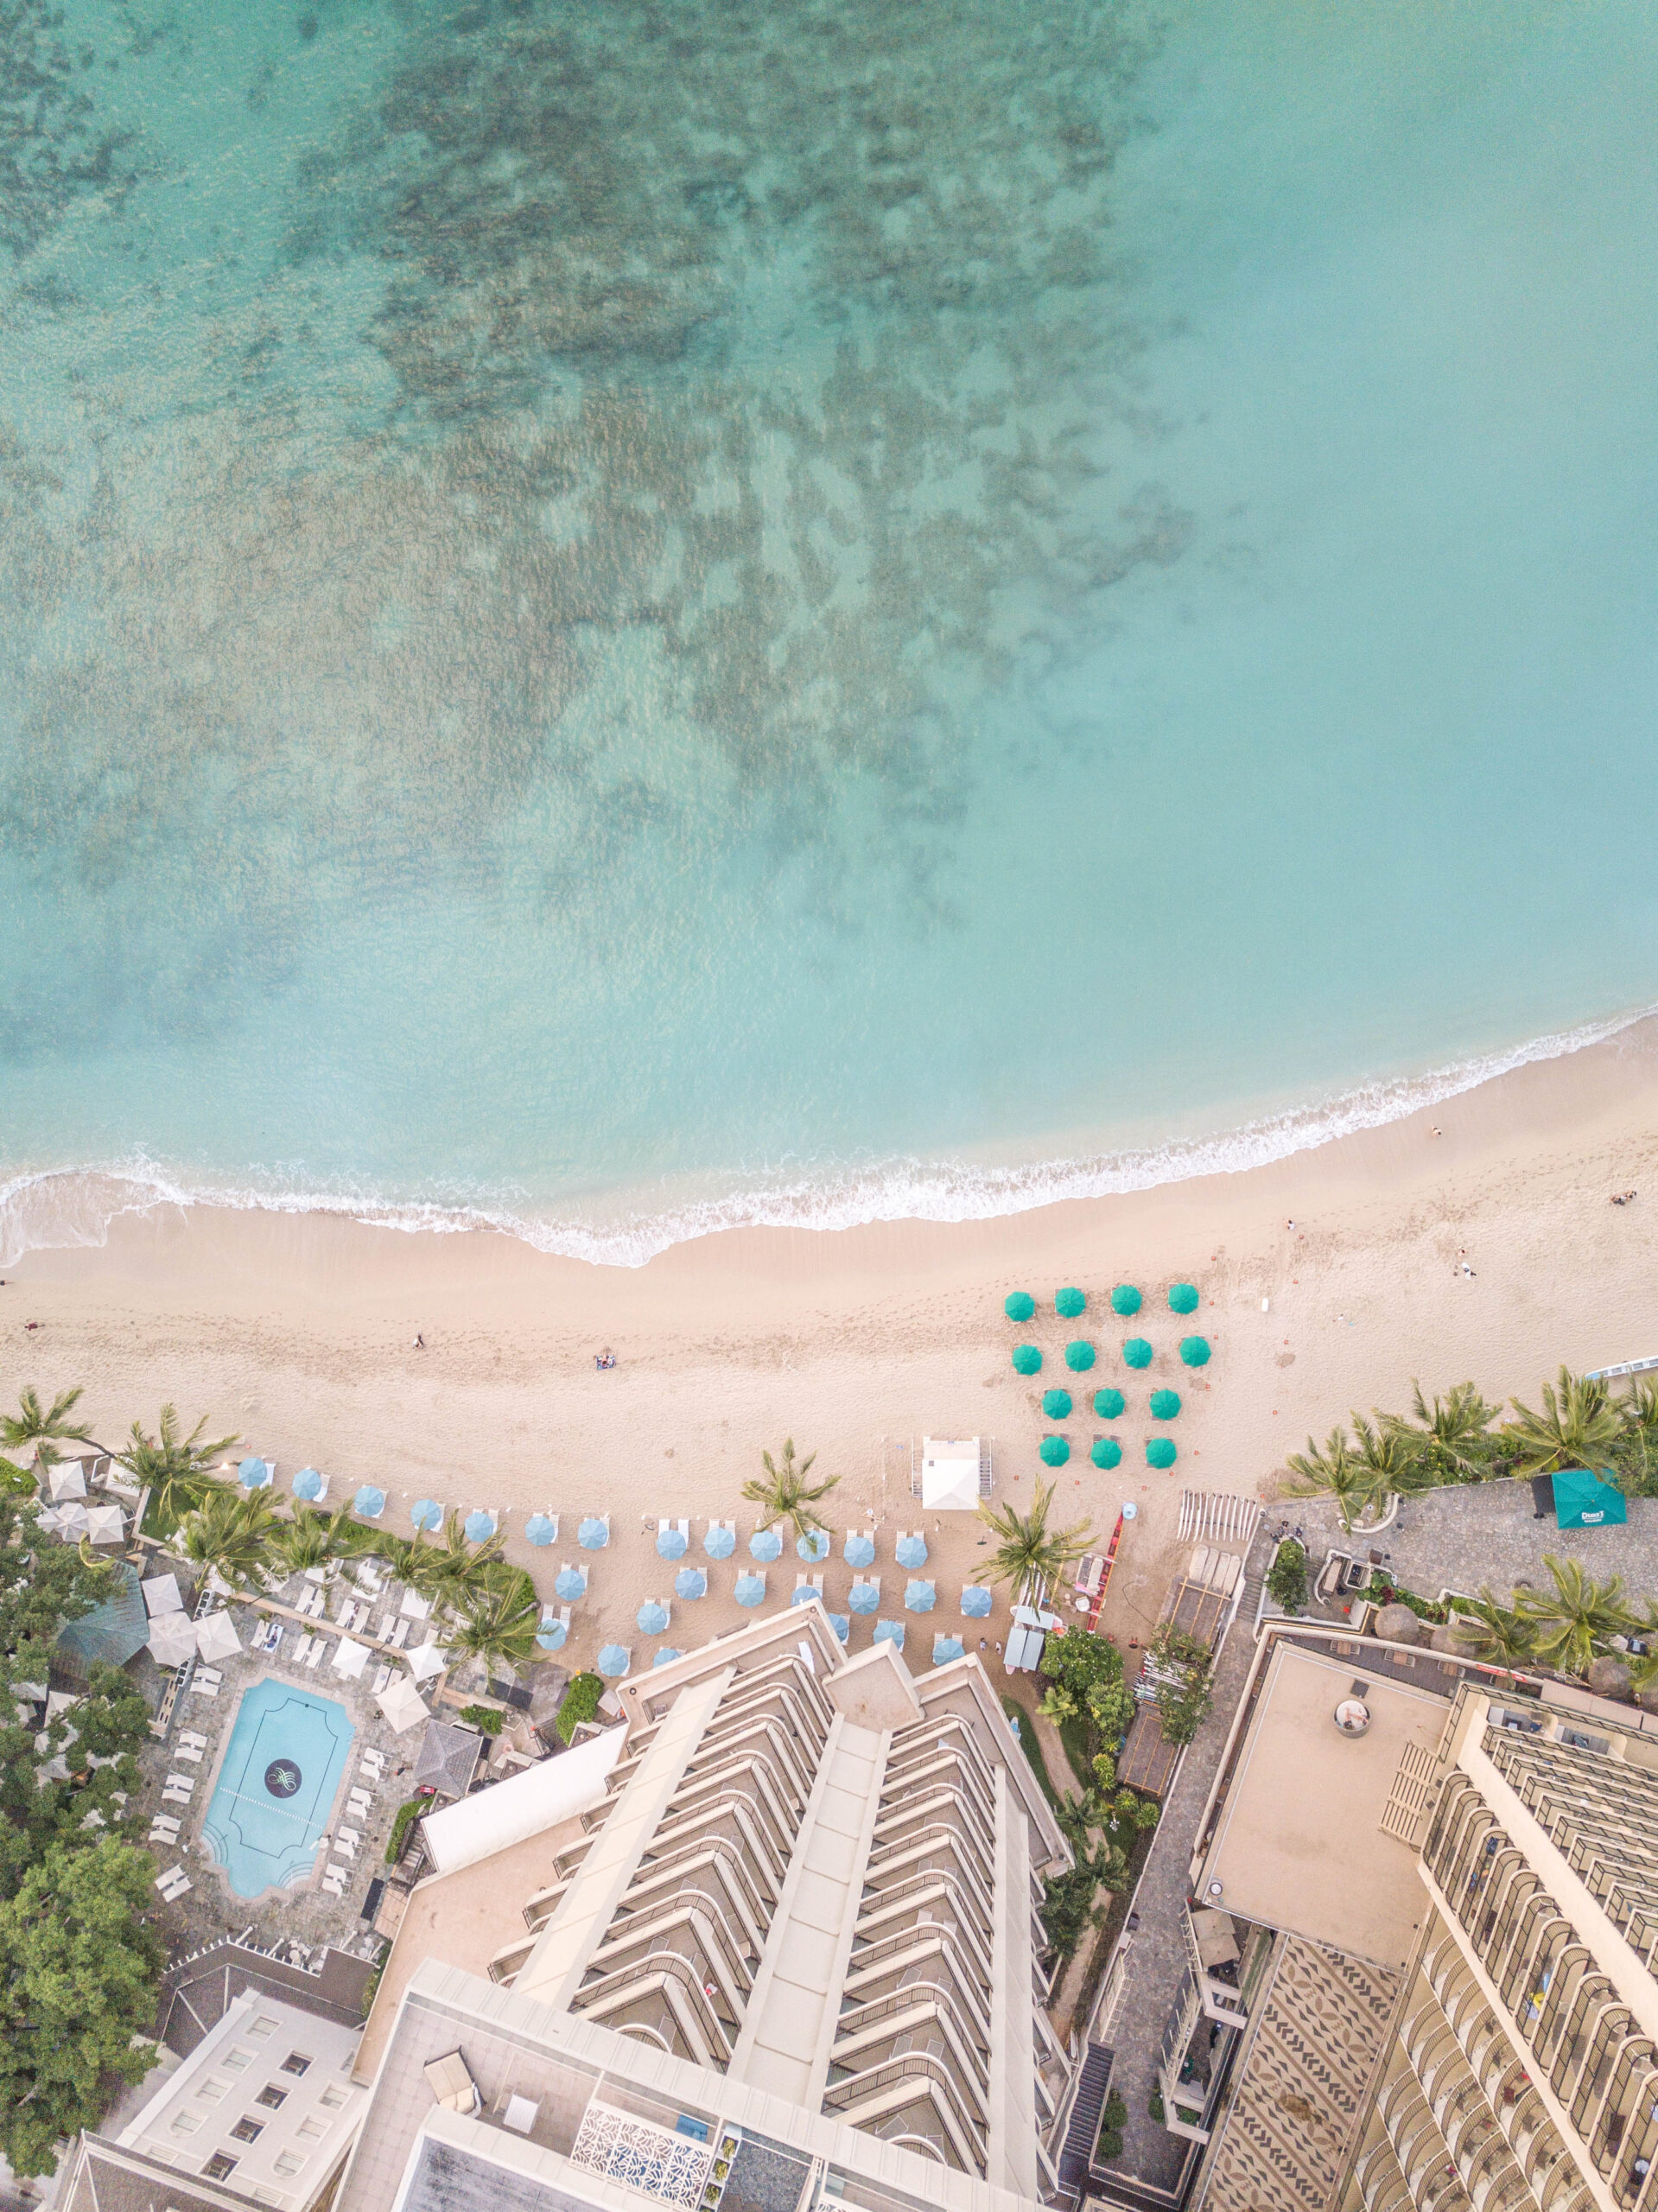 Waikiki Beach Hawaii - Aerial Beach Photography